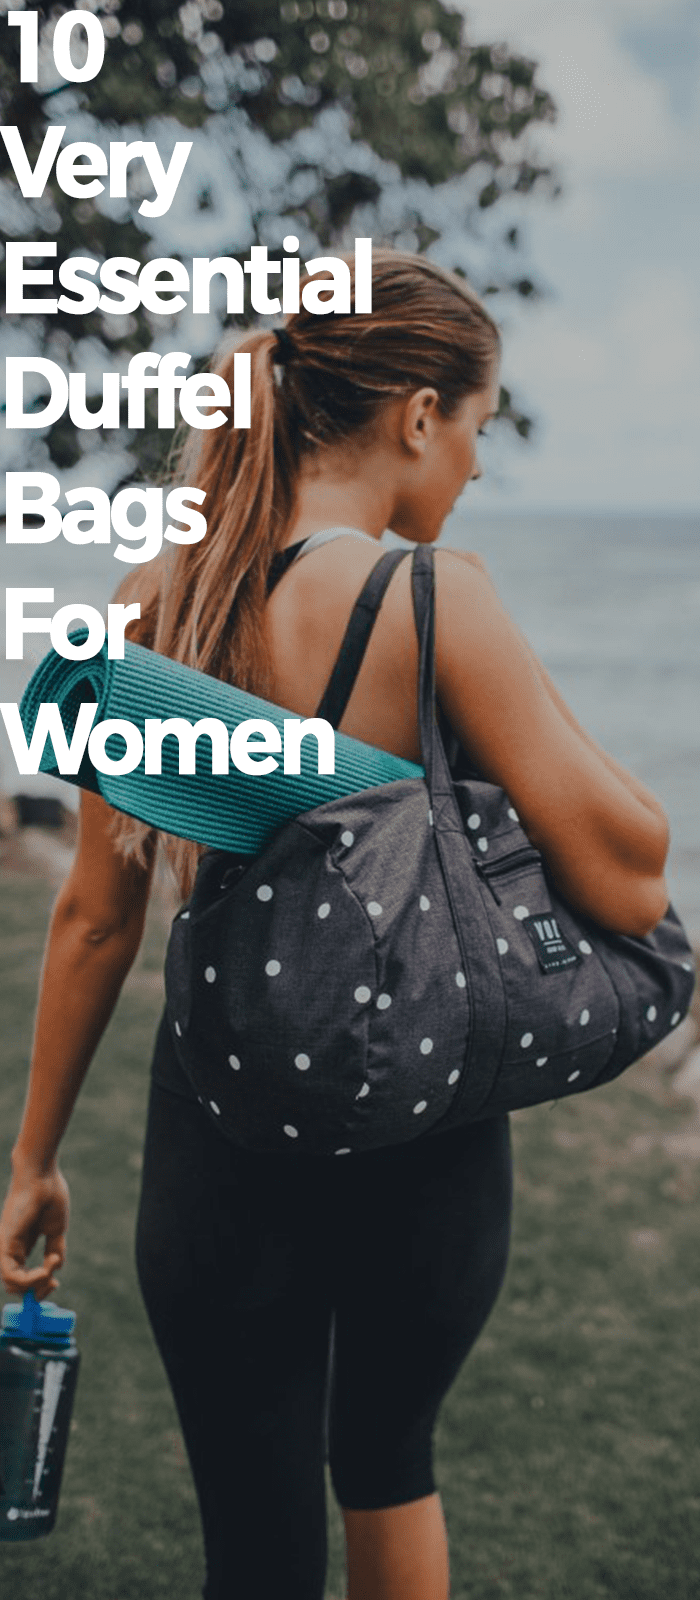 Very Essential Duffel Bags For Women